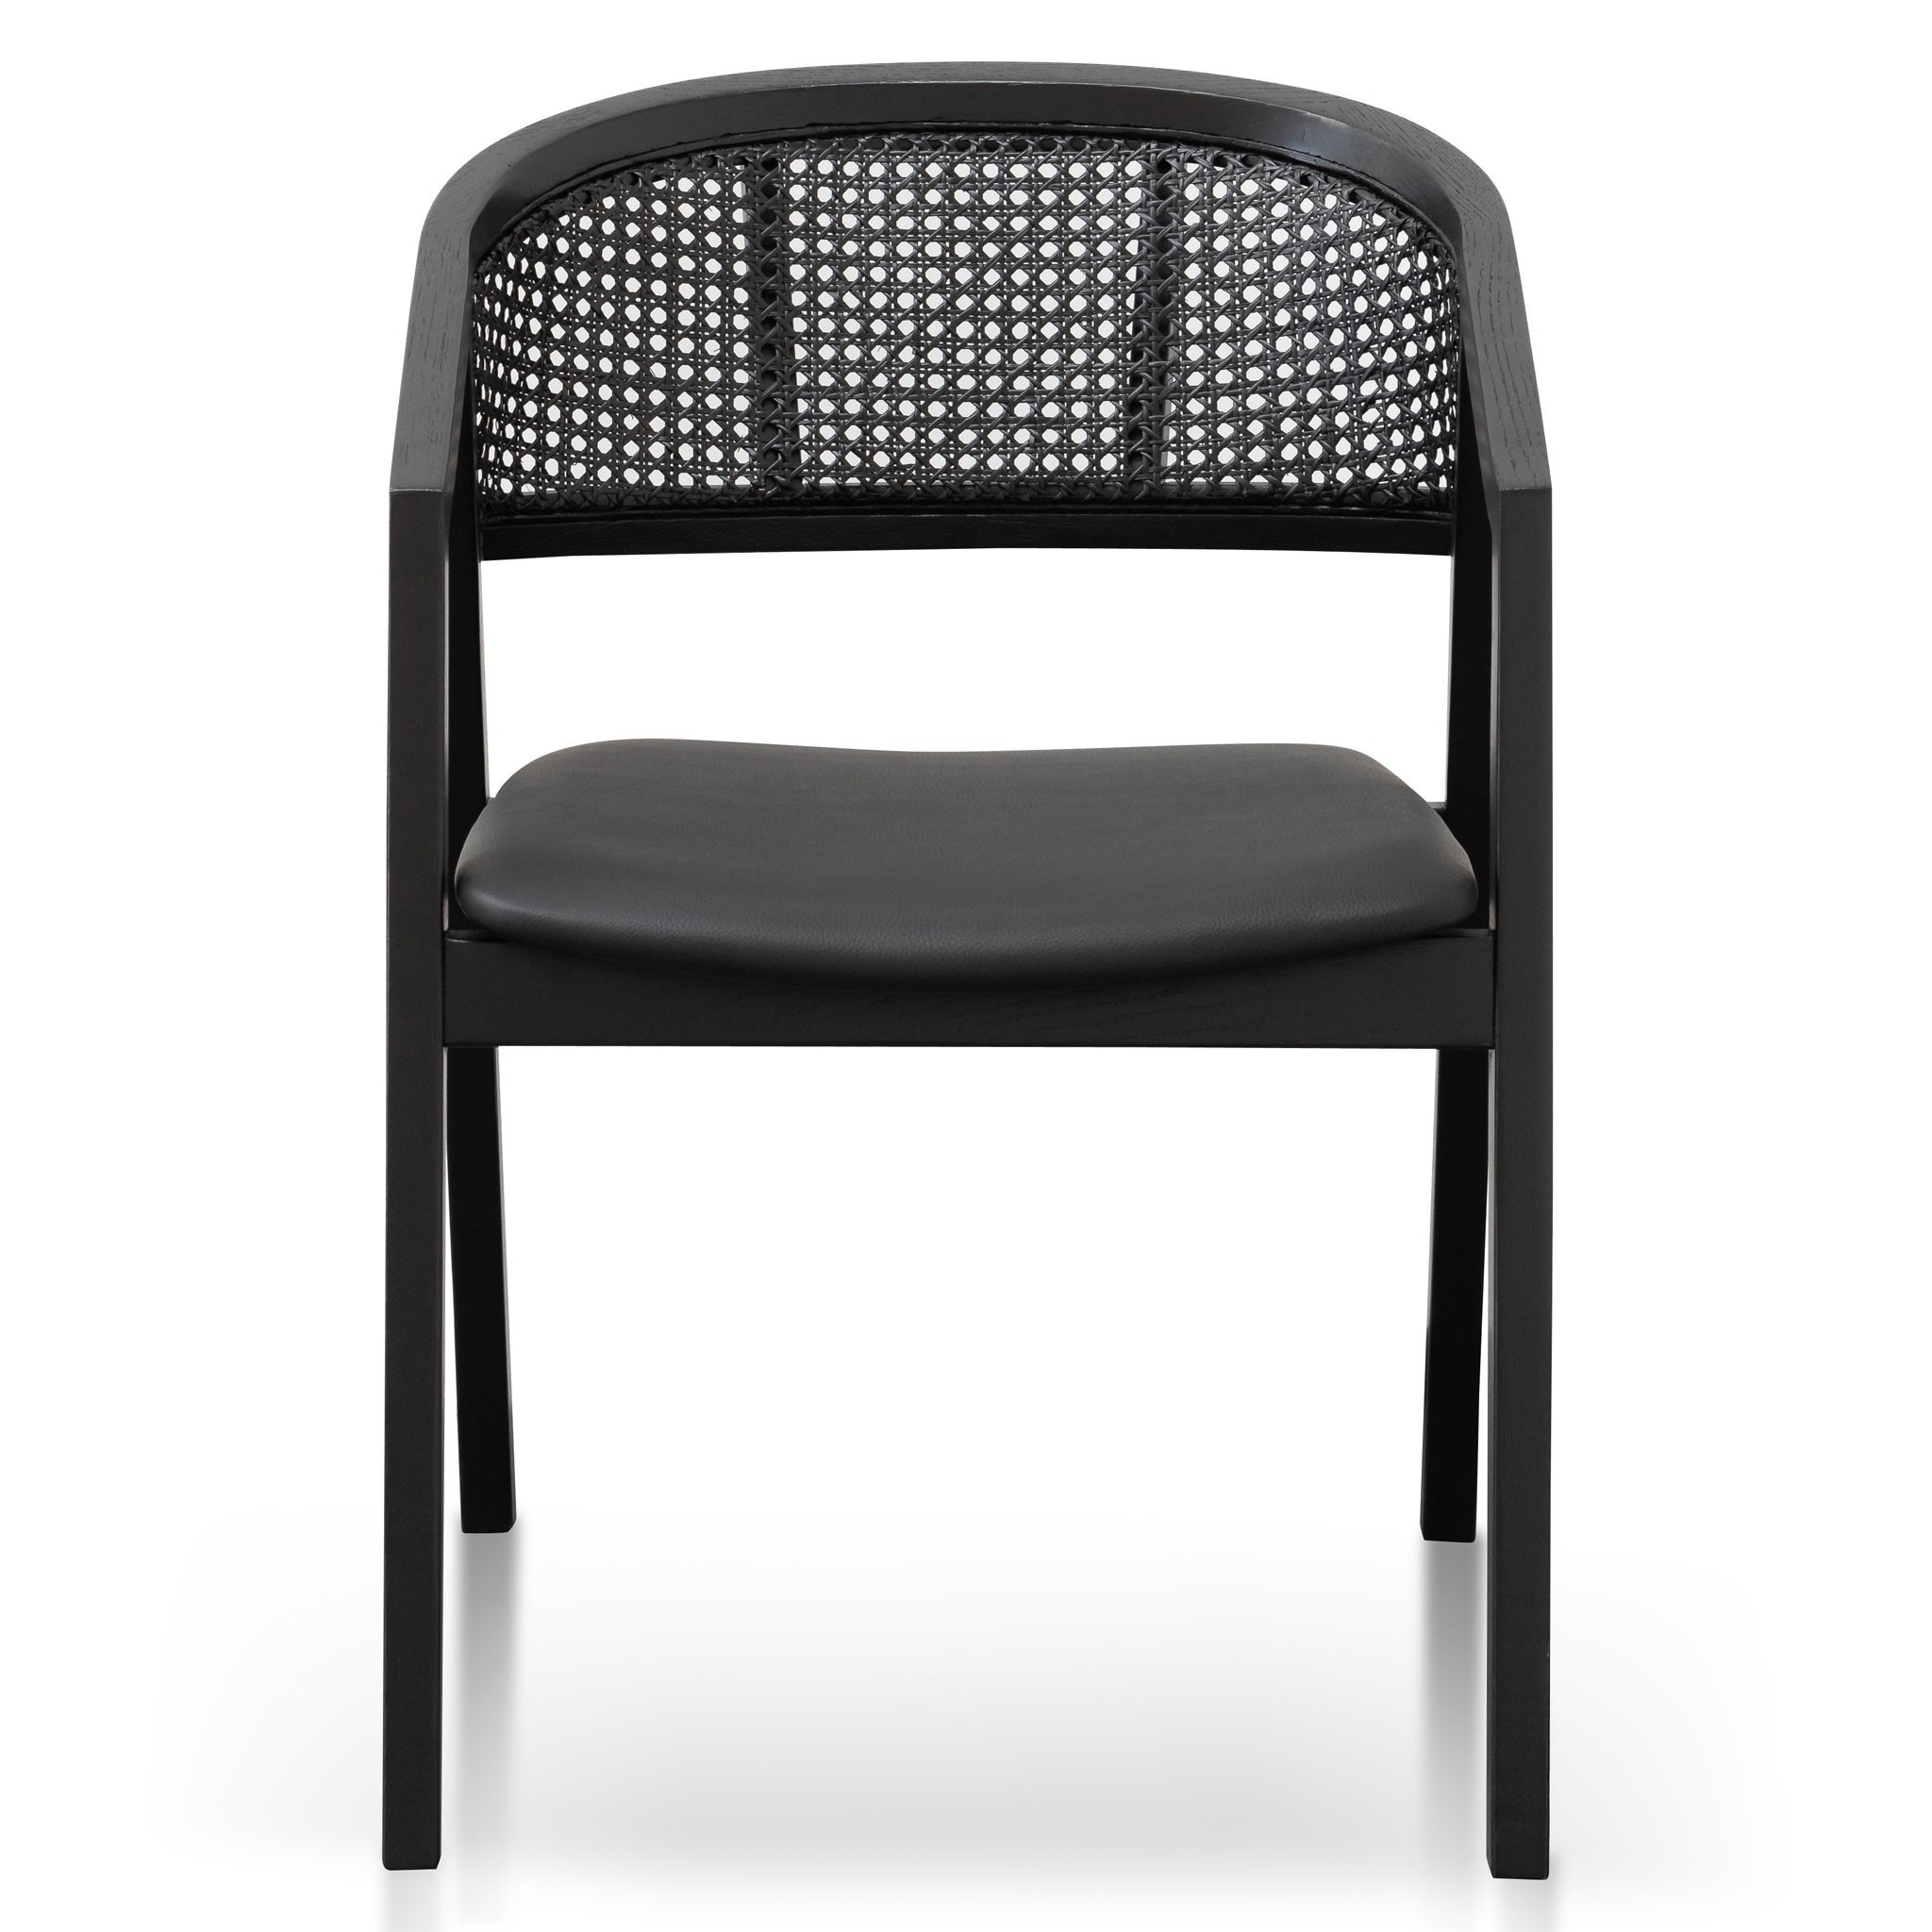 Hampden Wooden Dining Chair, Black